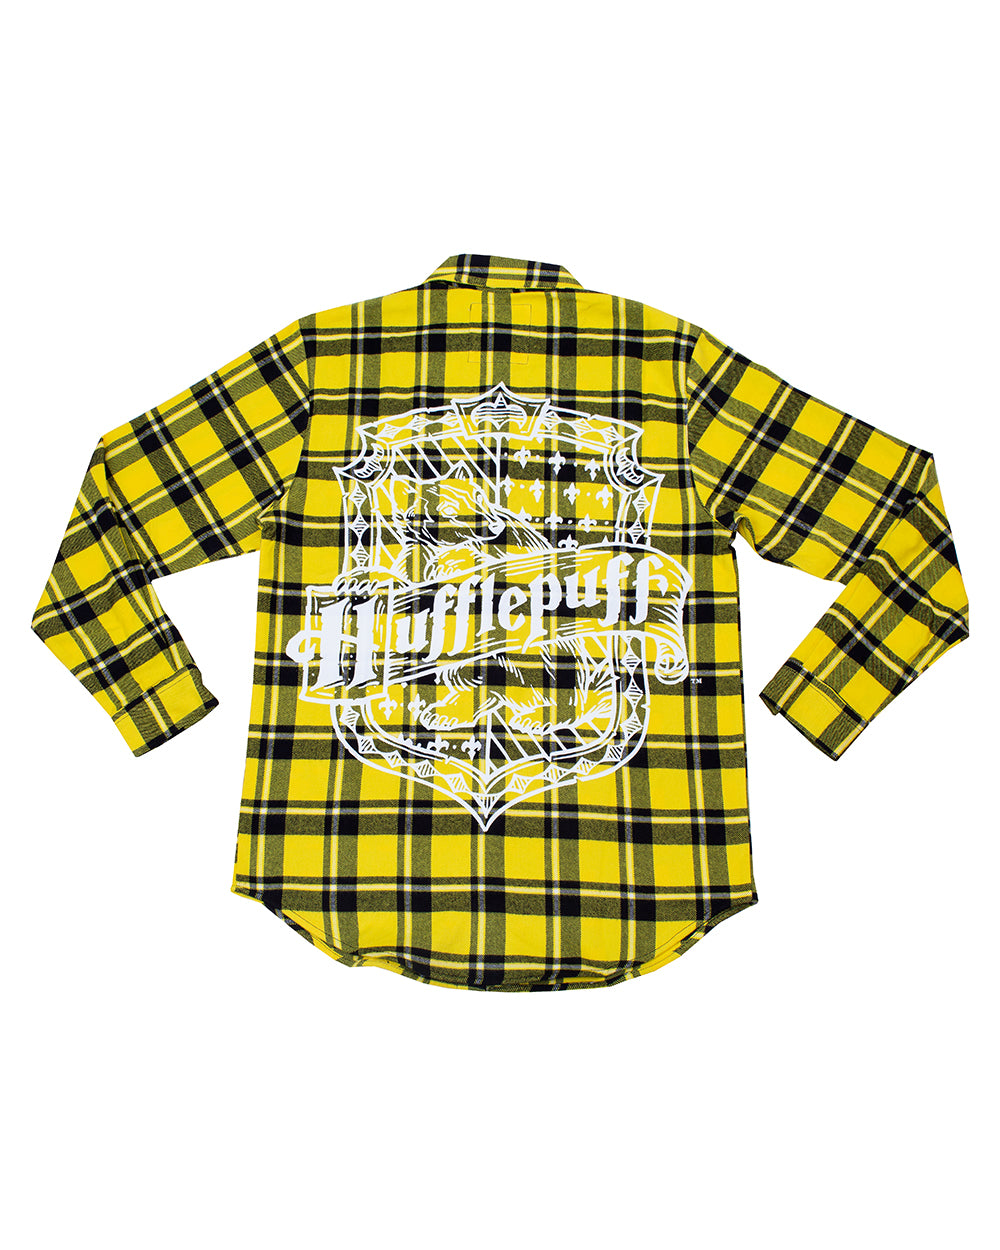 Cakeworthy Harry Potter Hufflepuff House Unisex Flannel - The Pink a la Mode - Cakeworthy - The Pink a la Mode